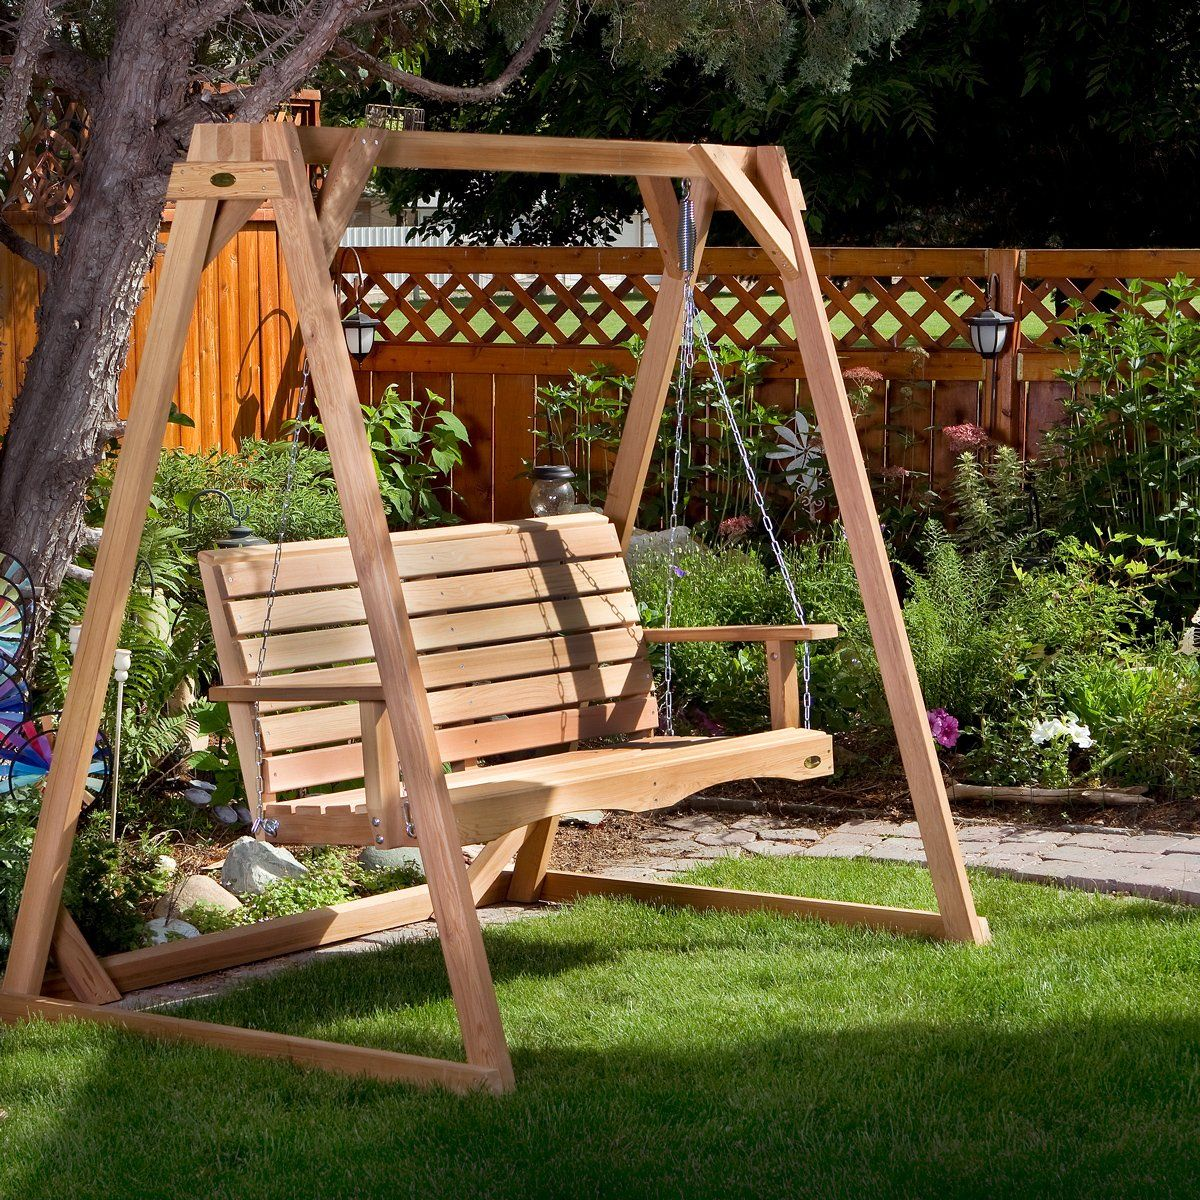 A Frame Swing Set 8 Ft In 2021 Porch Swing With Stand Porch Swing Porch Swing Frame Wooden porch swings with stand